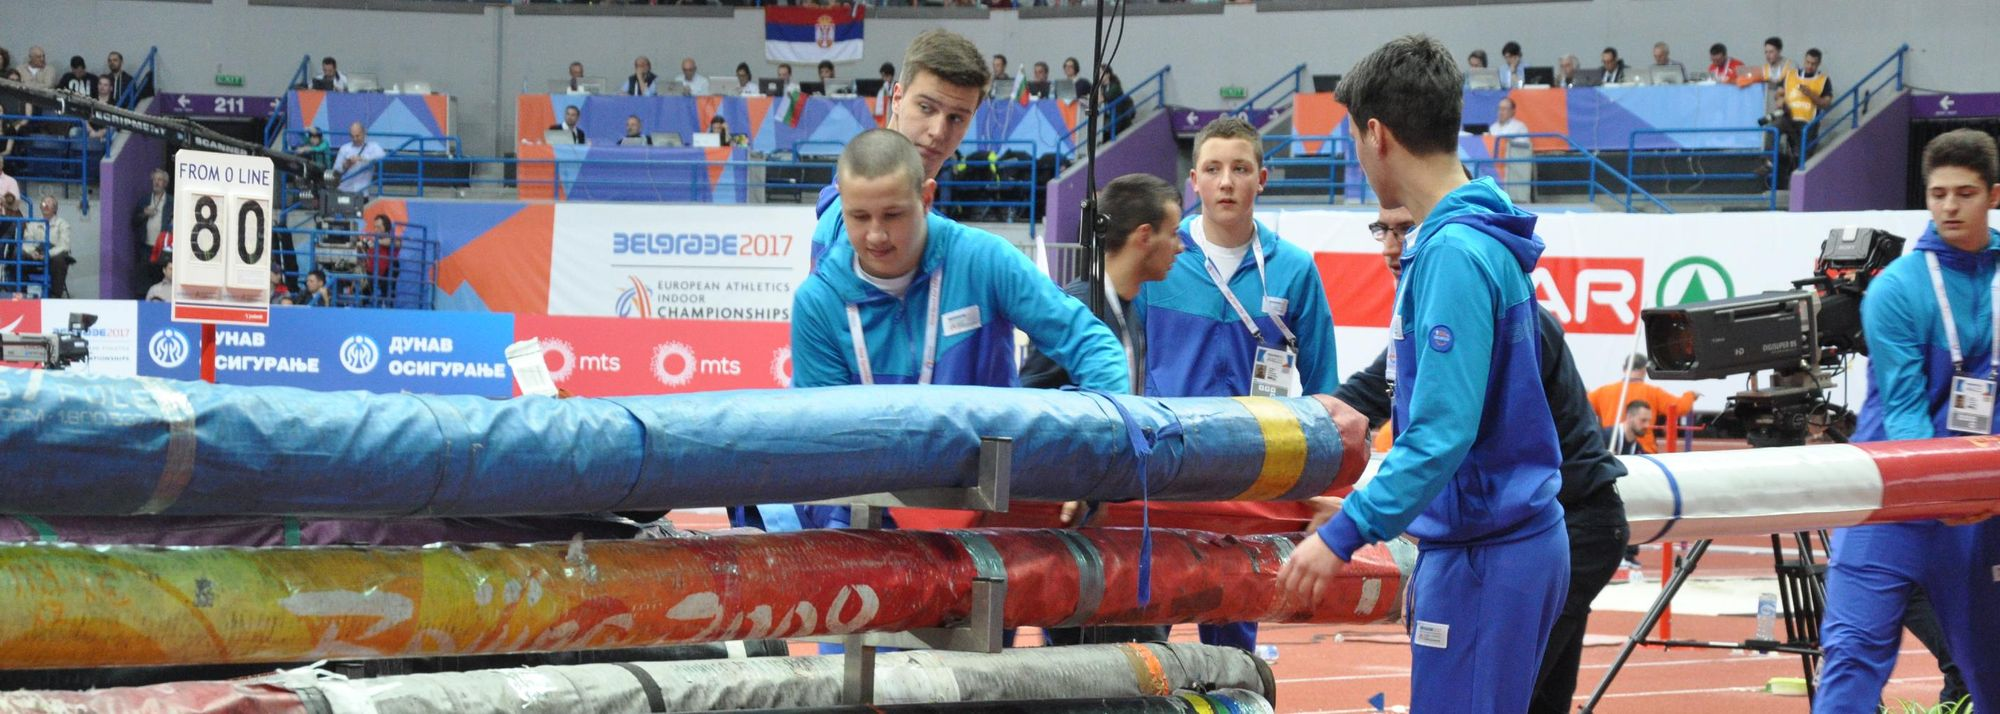 Become part of the World Athletics Indoor Championships Belgrade22 family.